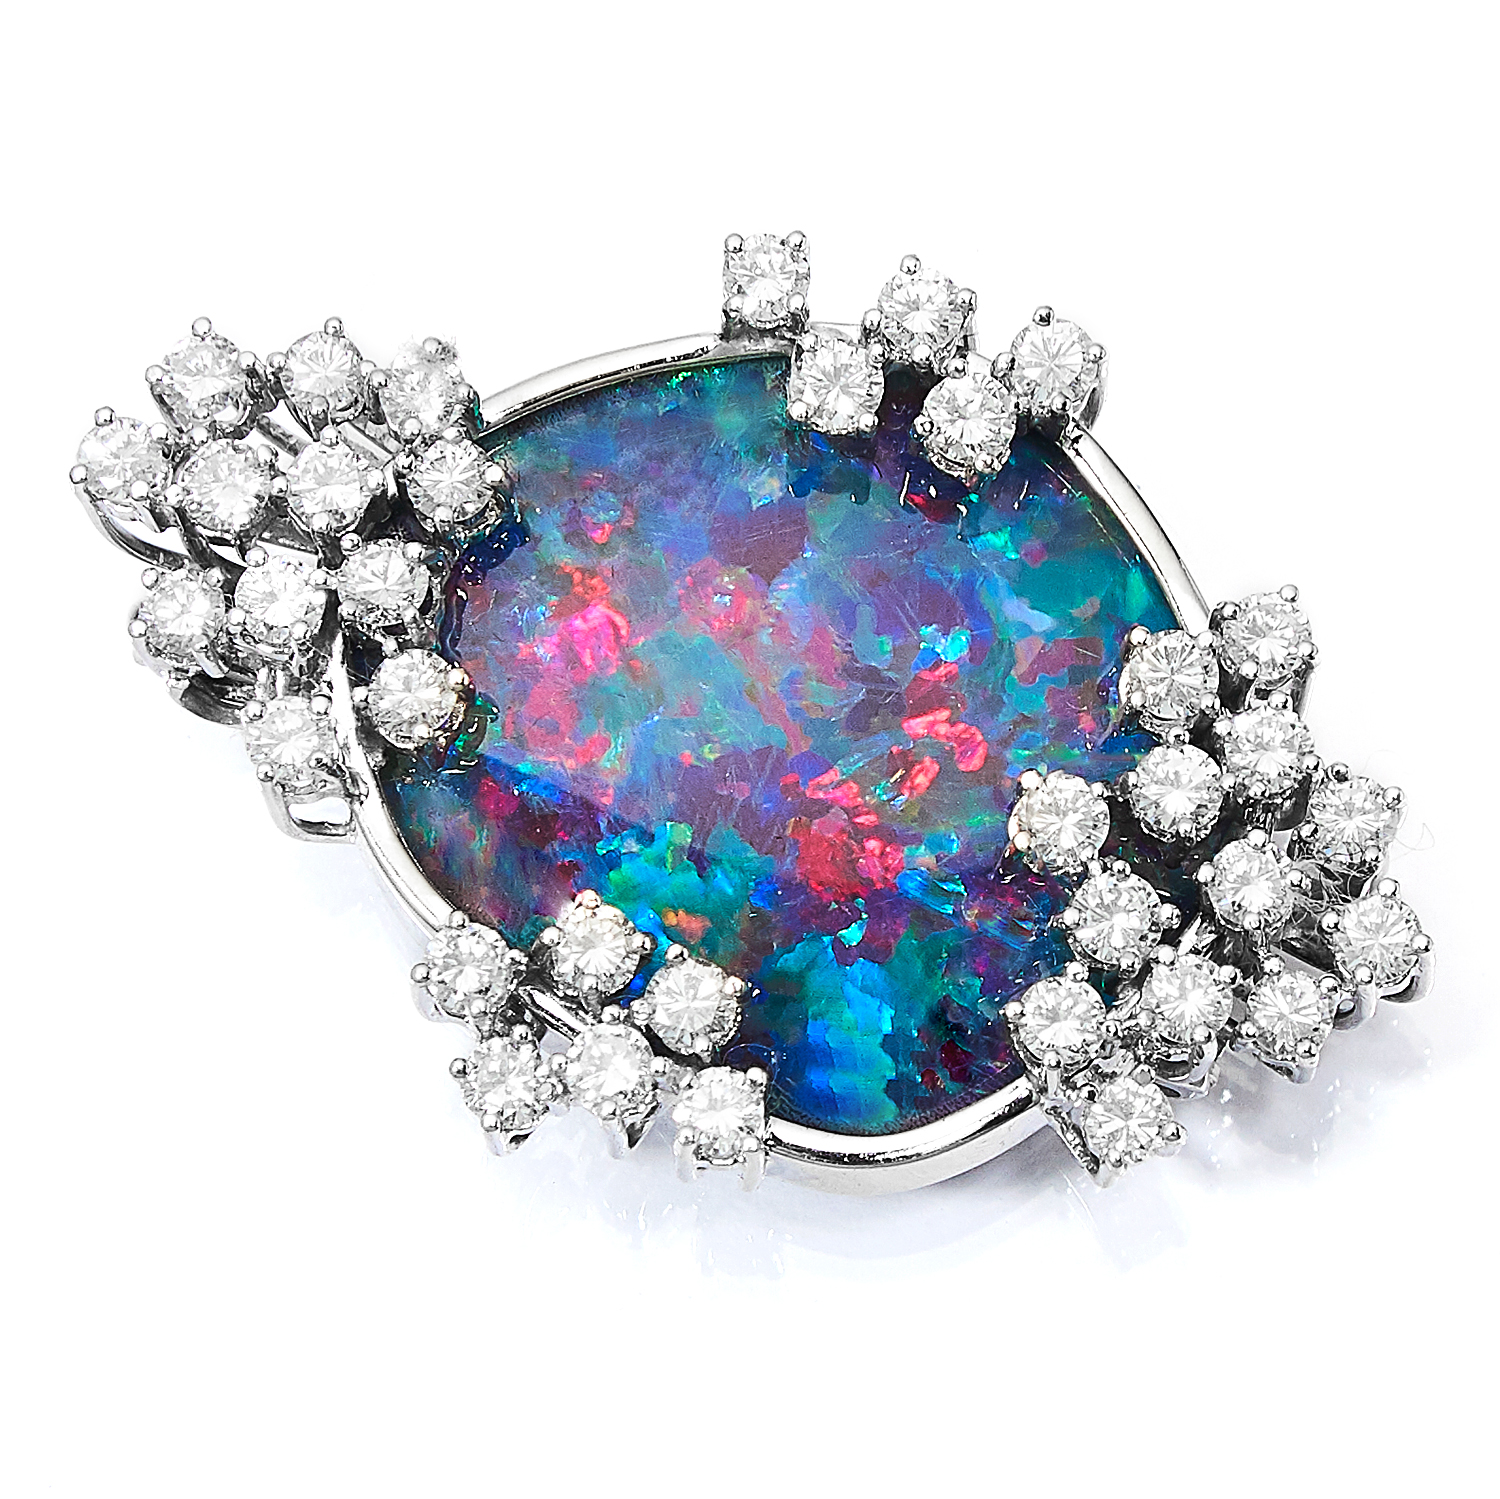 BLACK OPAL AND DIAMOND BROOCH in 14ct white gold, set with a black opal doublet in a border of round